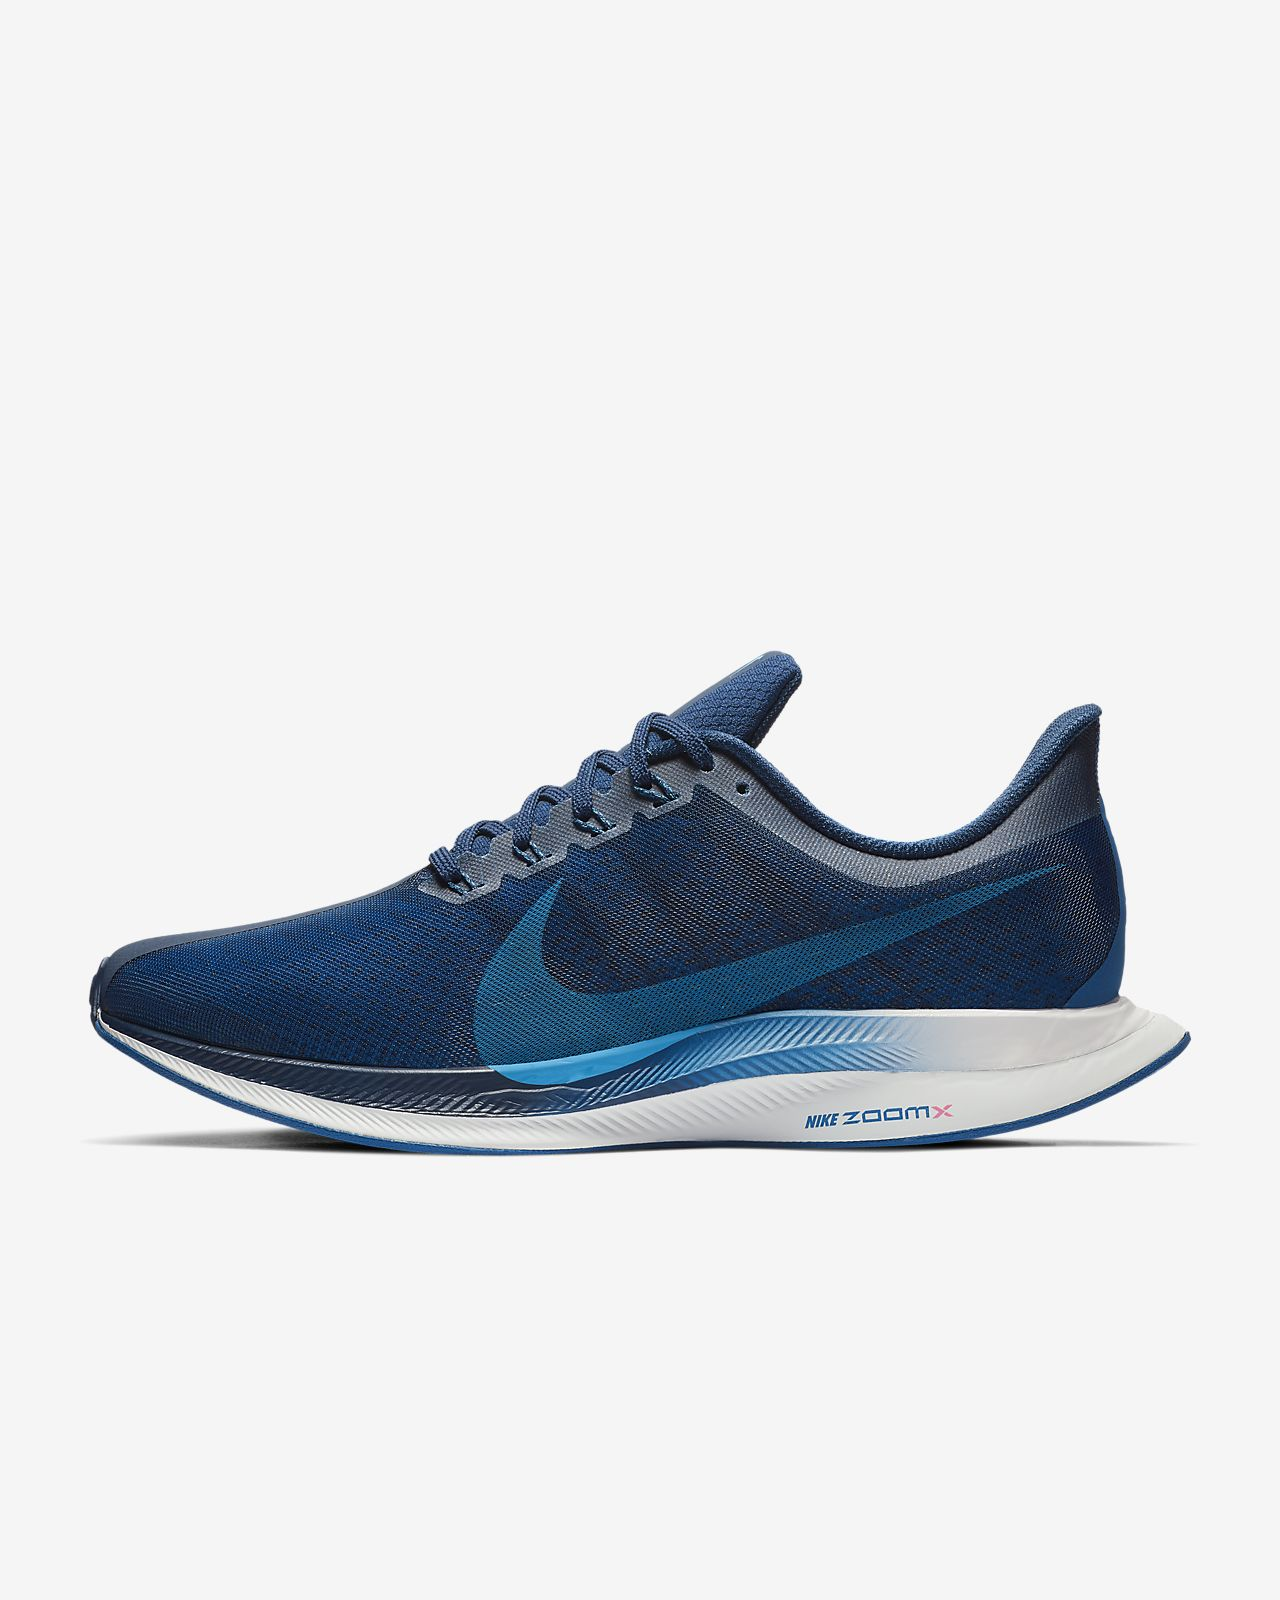 on sale 1b854 e28a1 Nike Zoom Pegasus Turbo